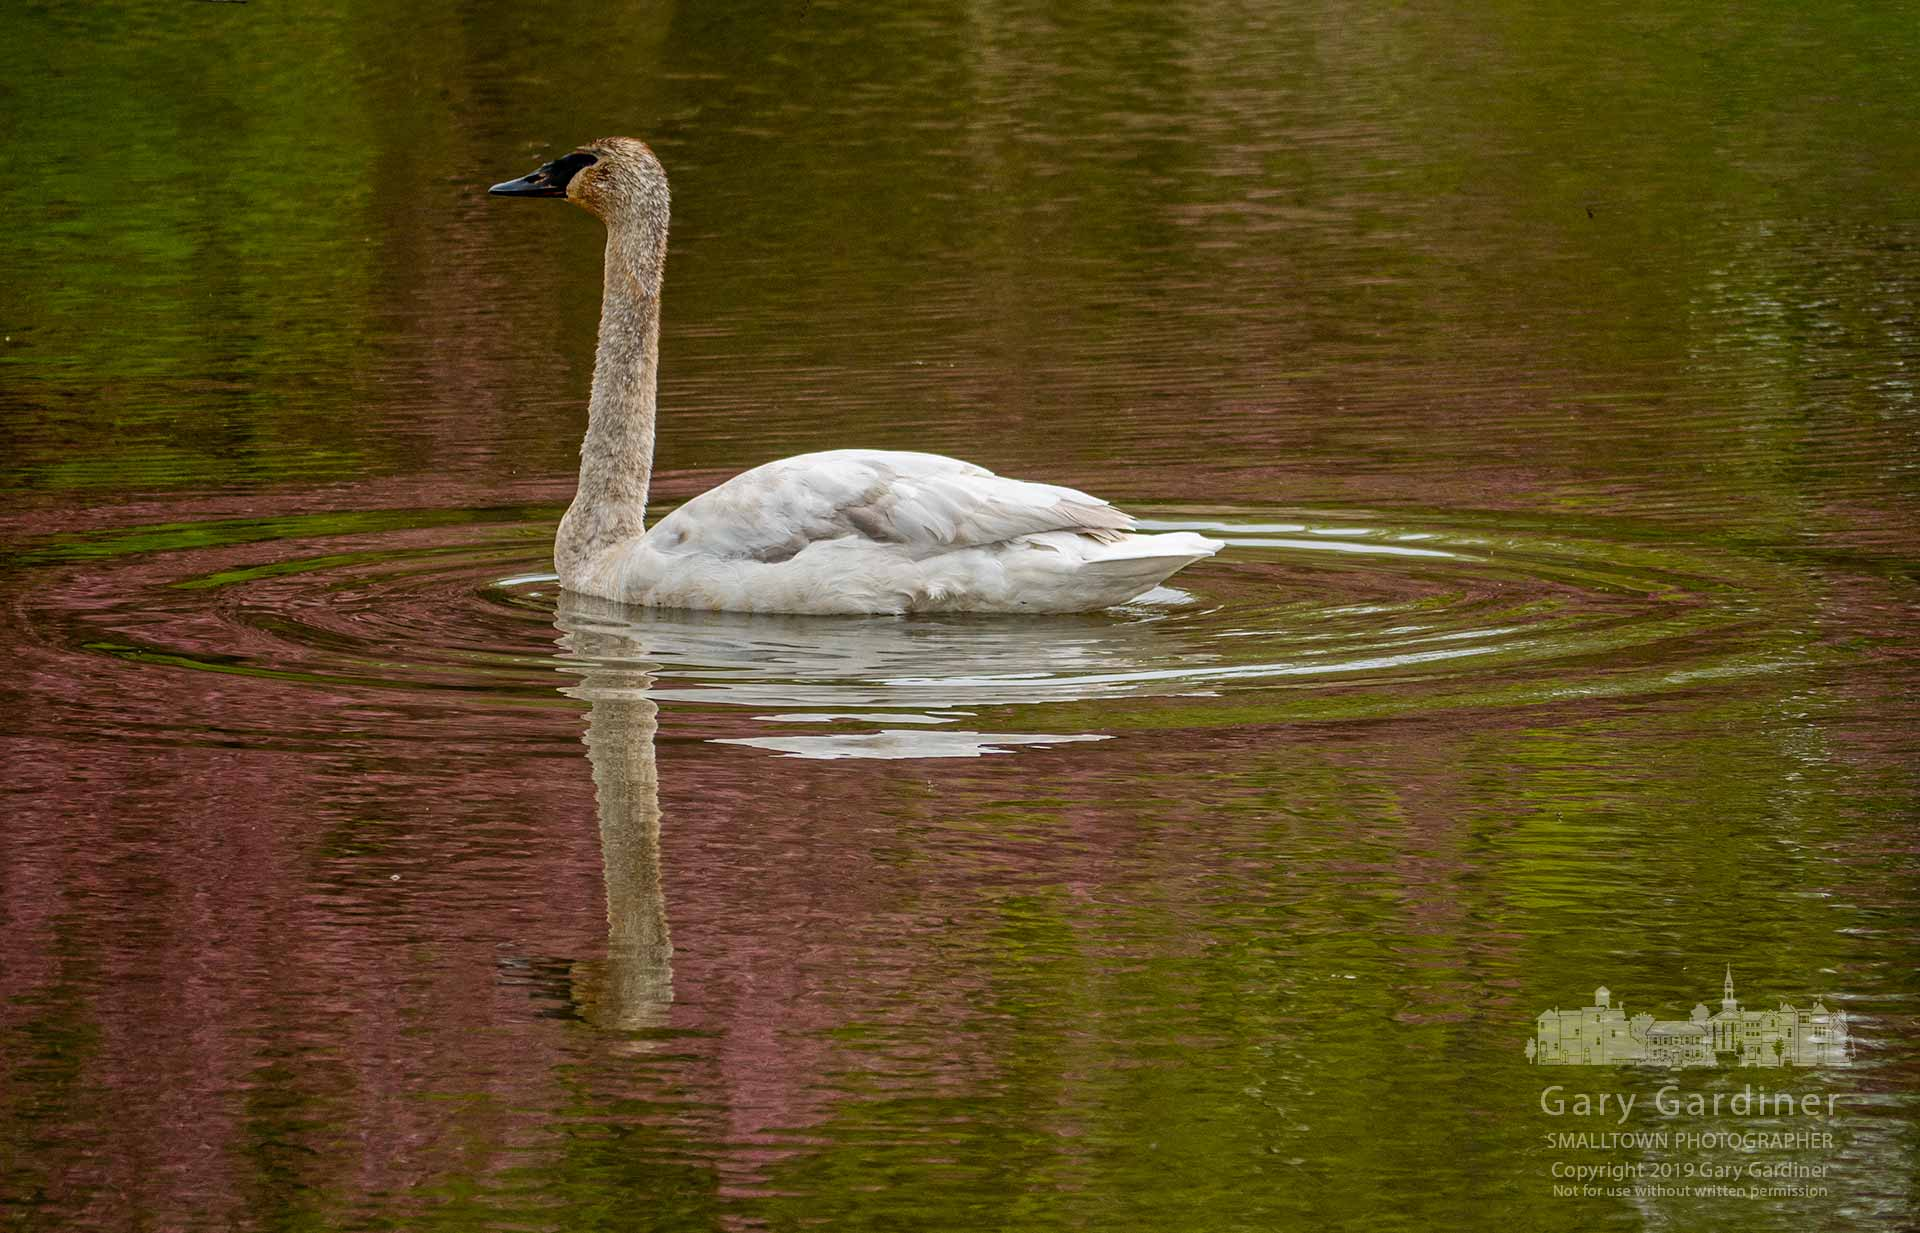 A Trumpeter Swan settles into the wetland waters of Highlands Park reflecting the spring colors of flowering trees in its placid waters. My Final Photo for April 30, 2019.